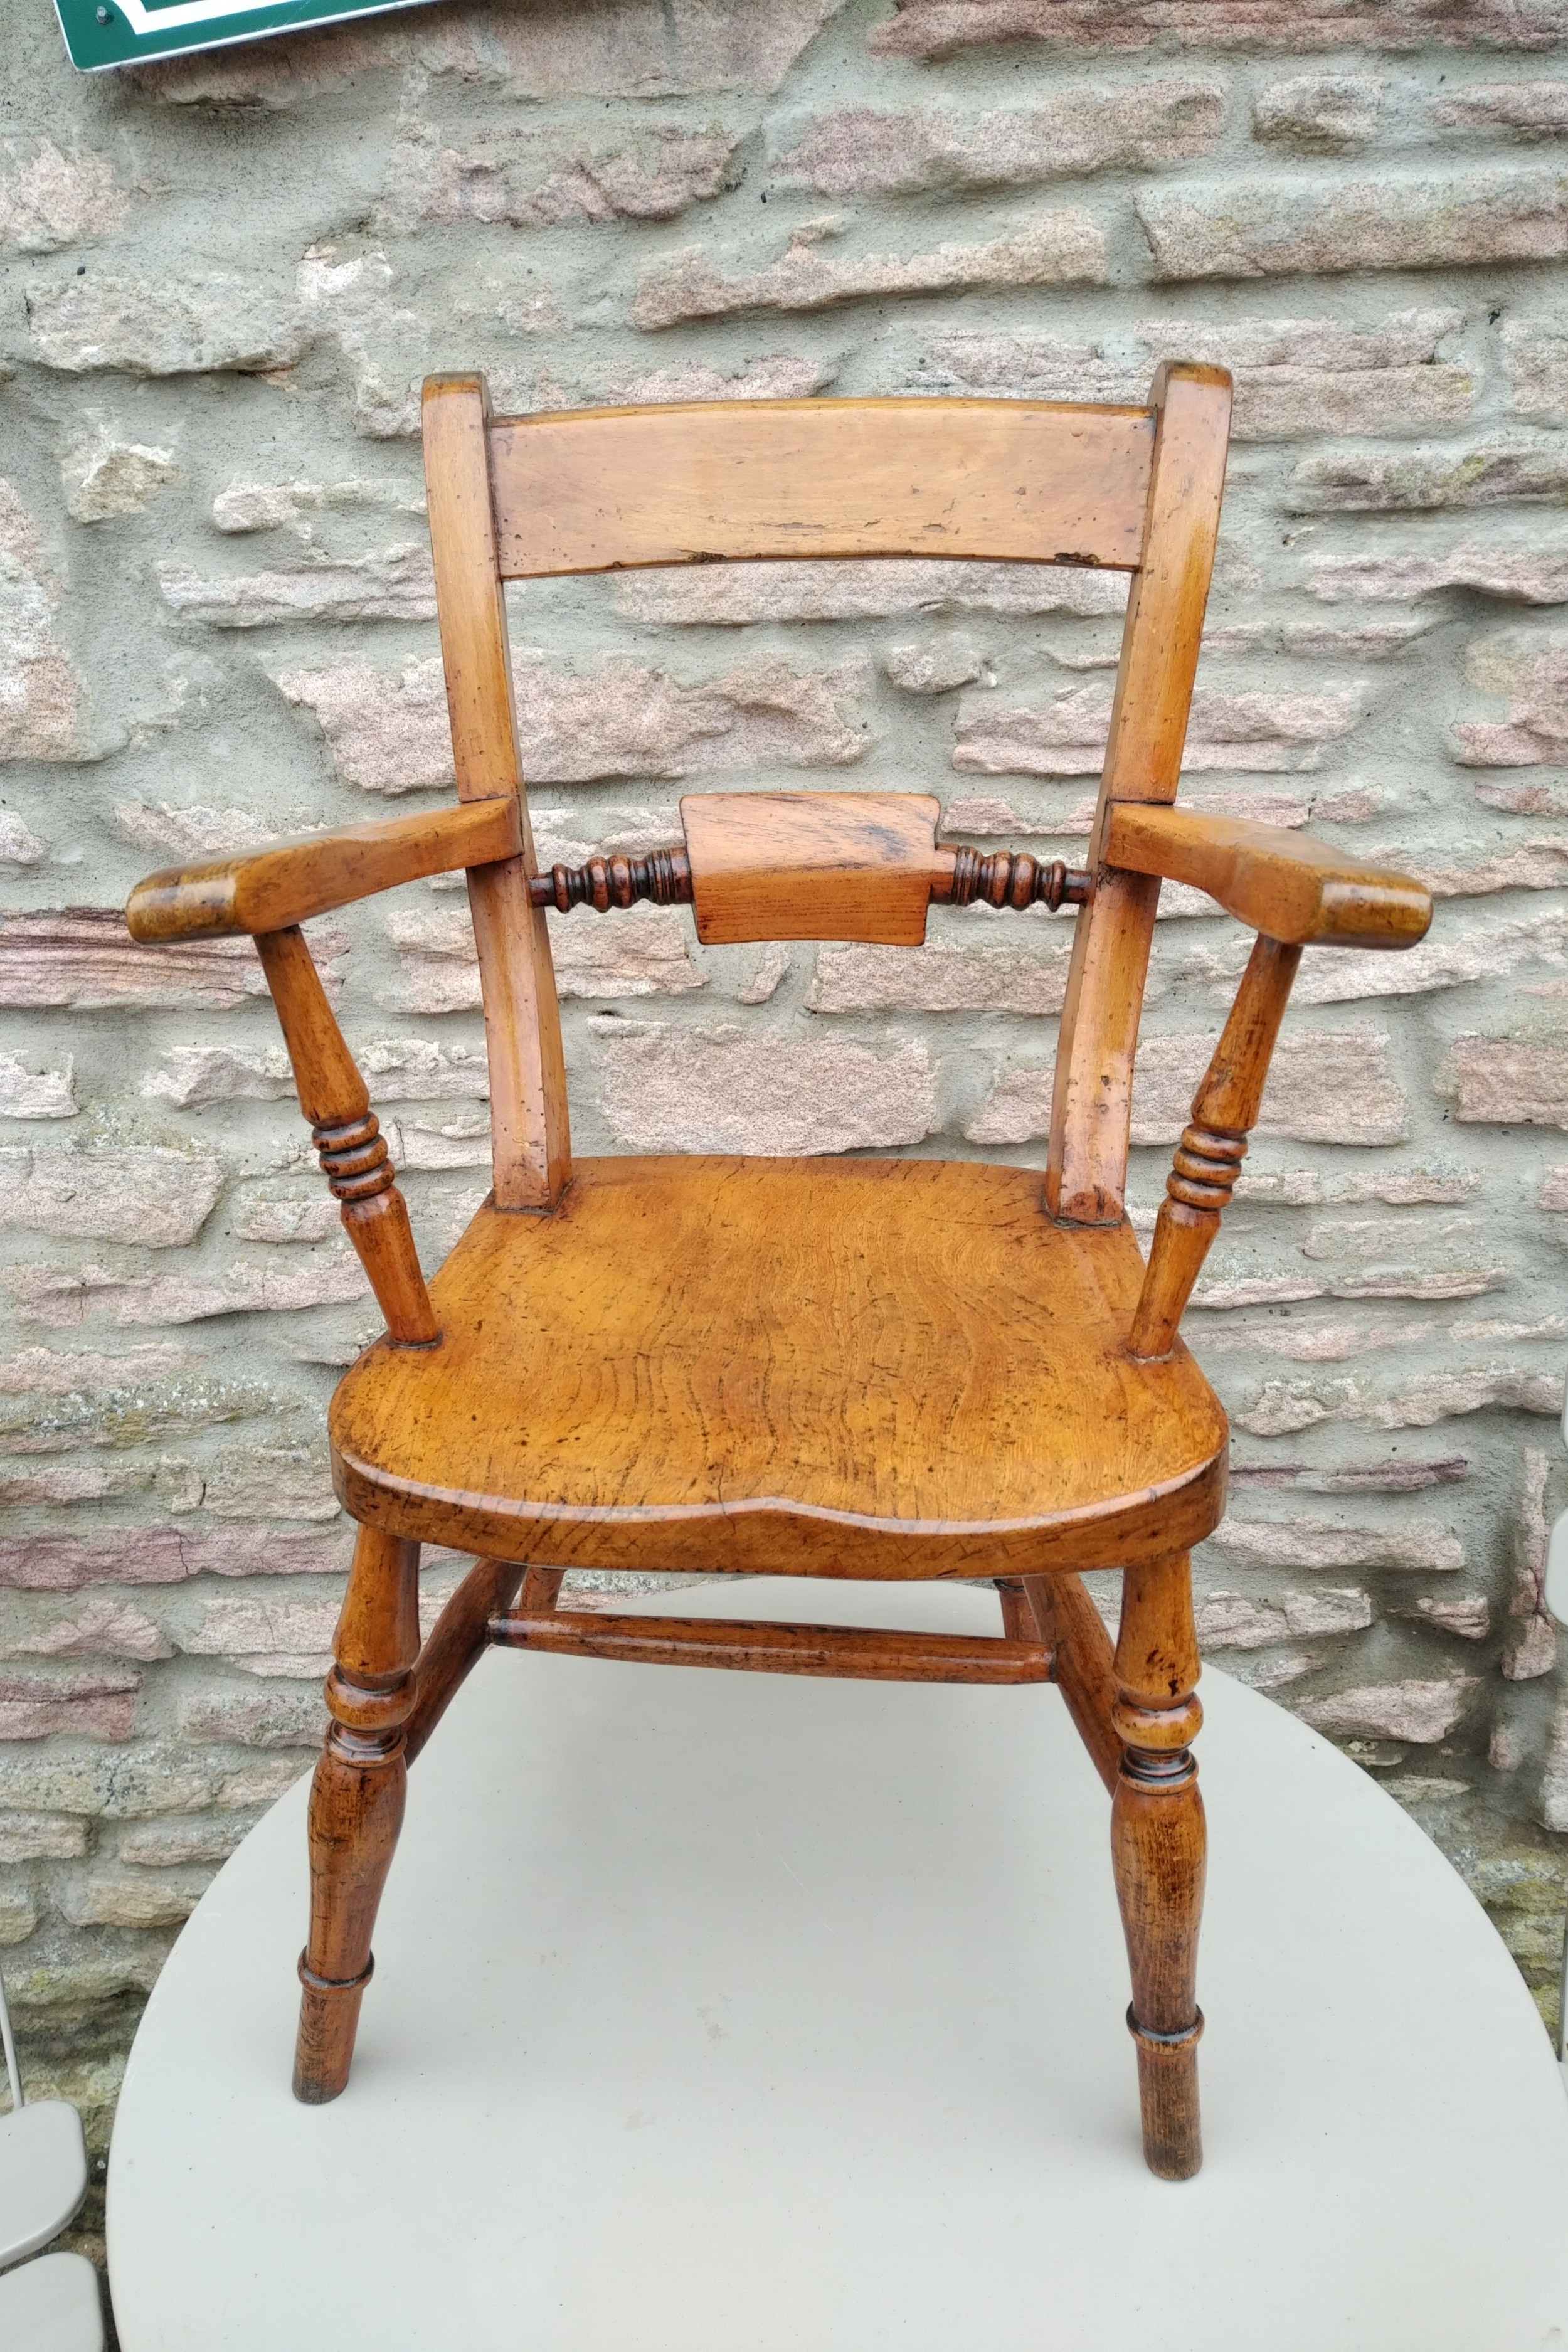 fine example of a 19th century childrens chair